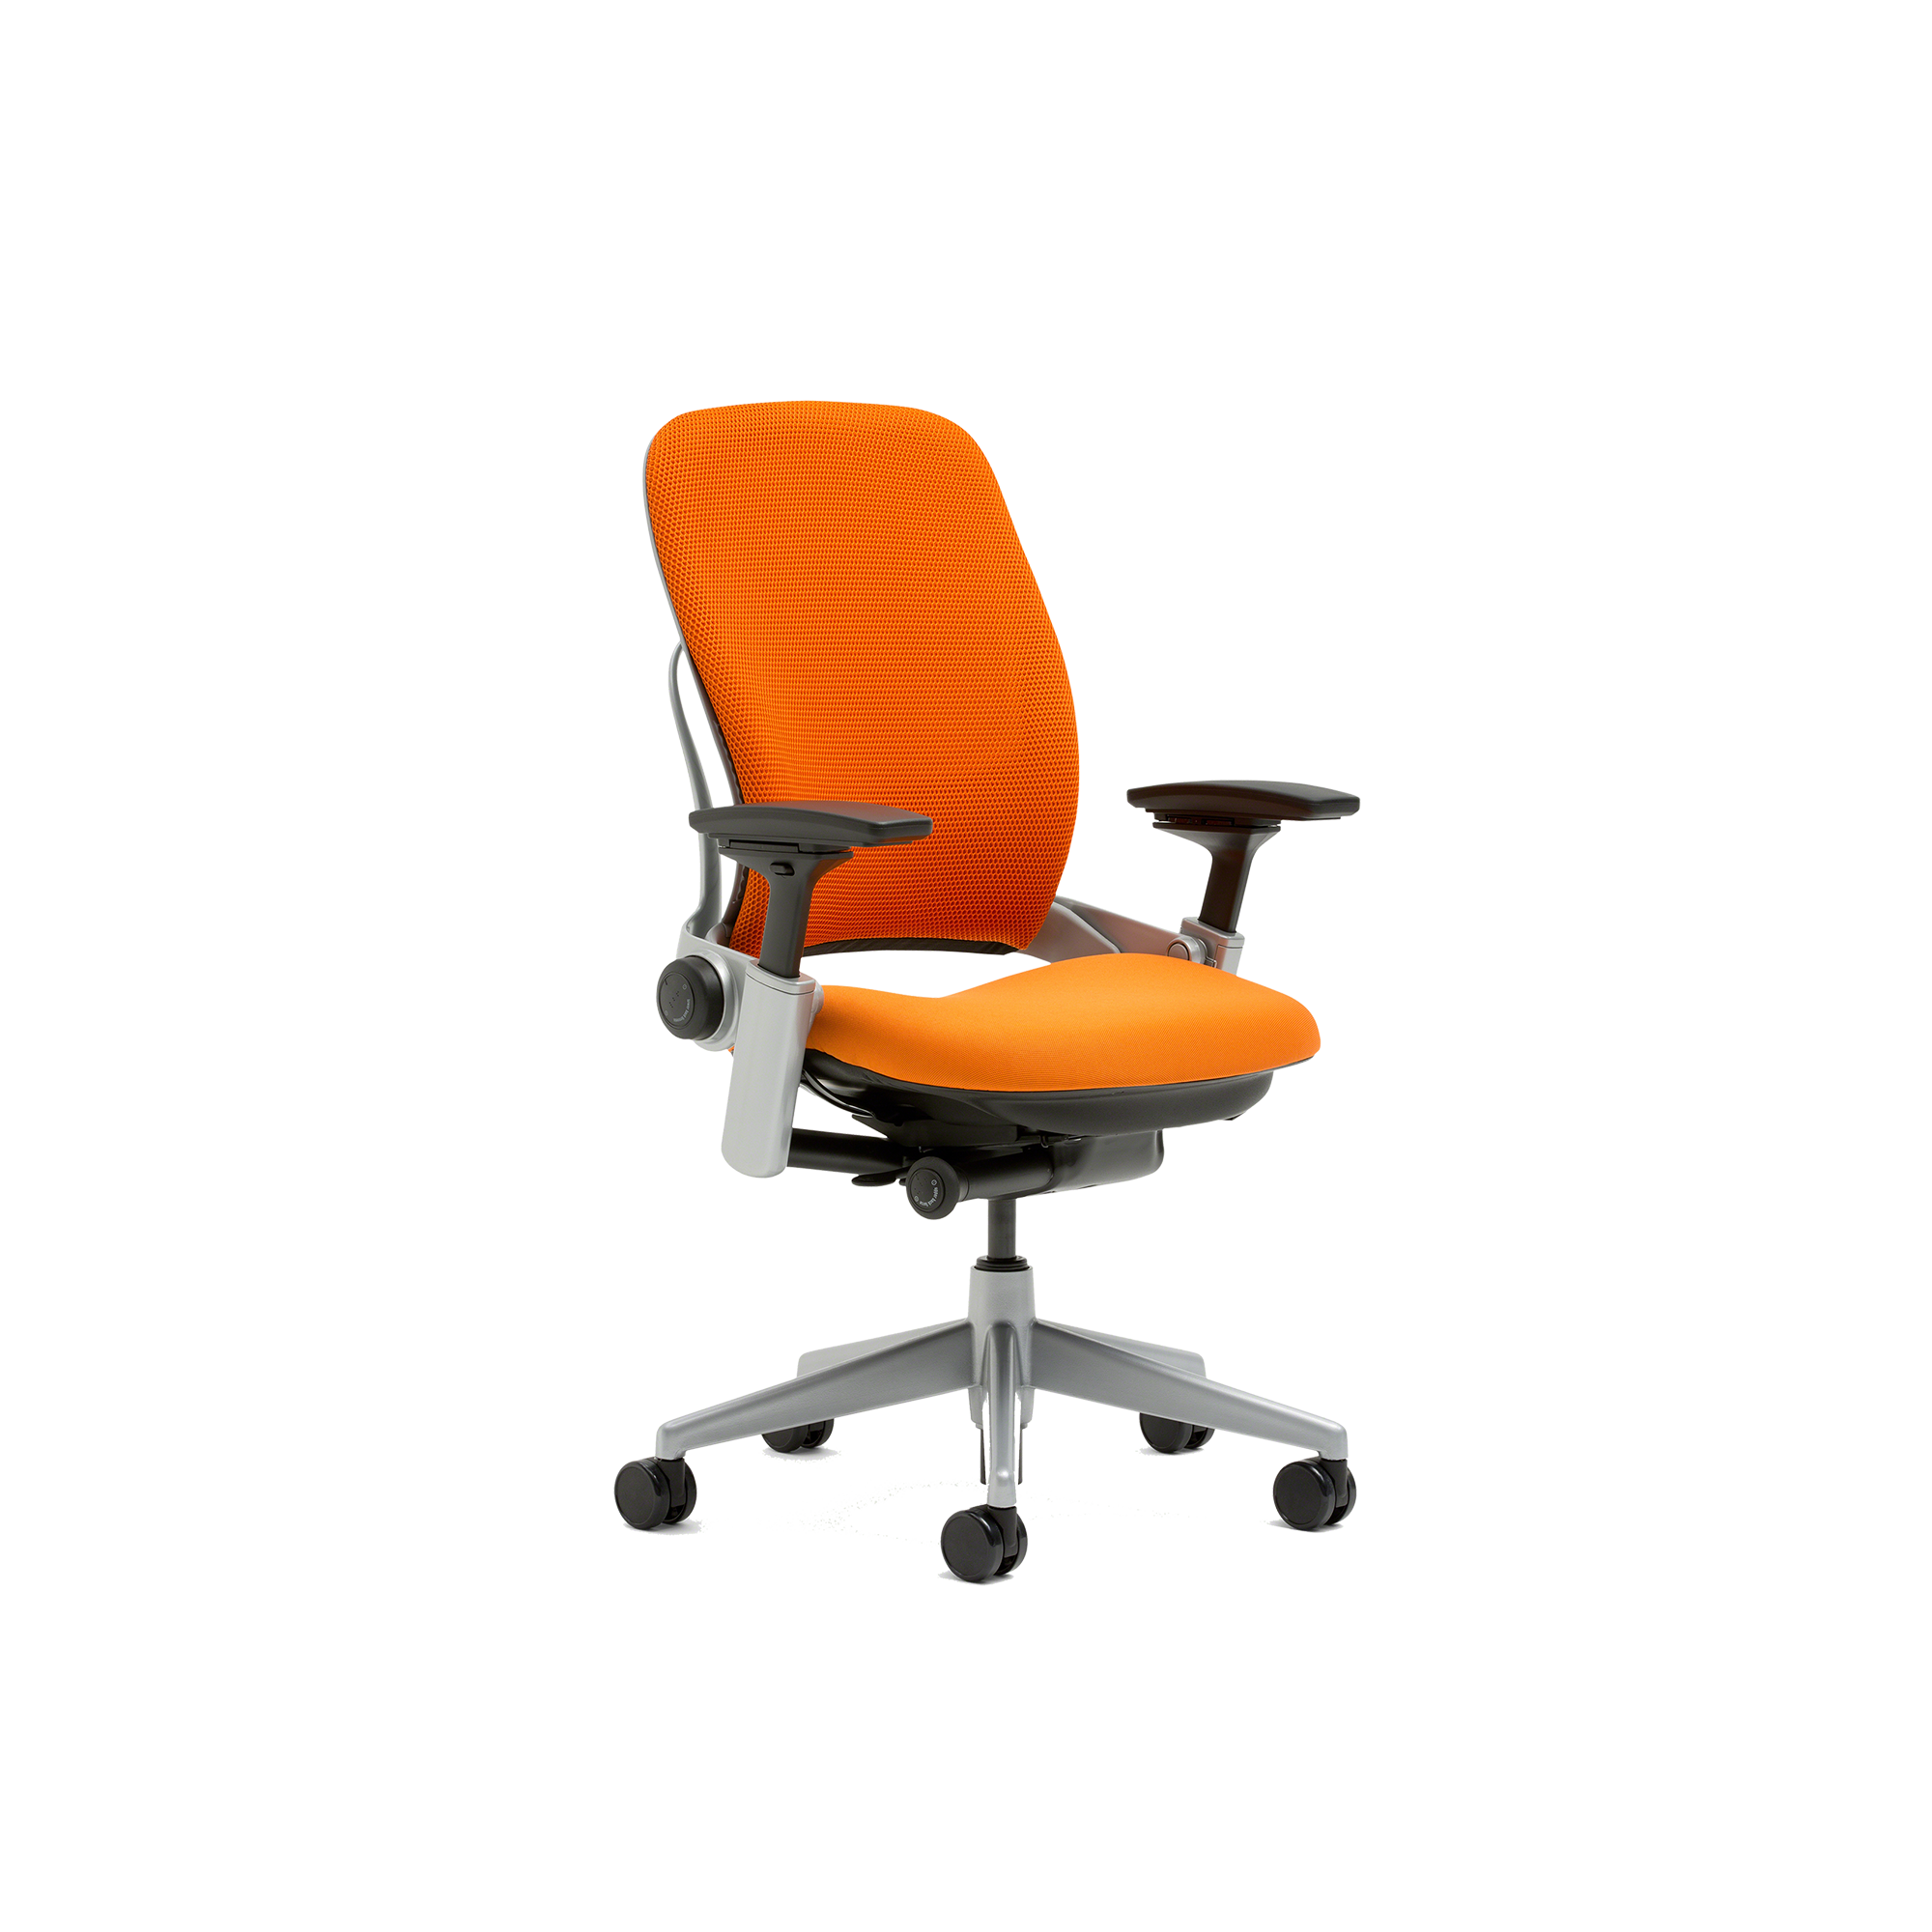 Office Chair Wiki The Chair Office Wiki O Linkedlifescom